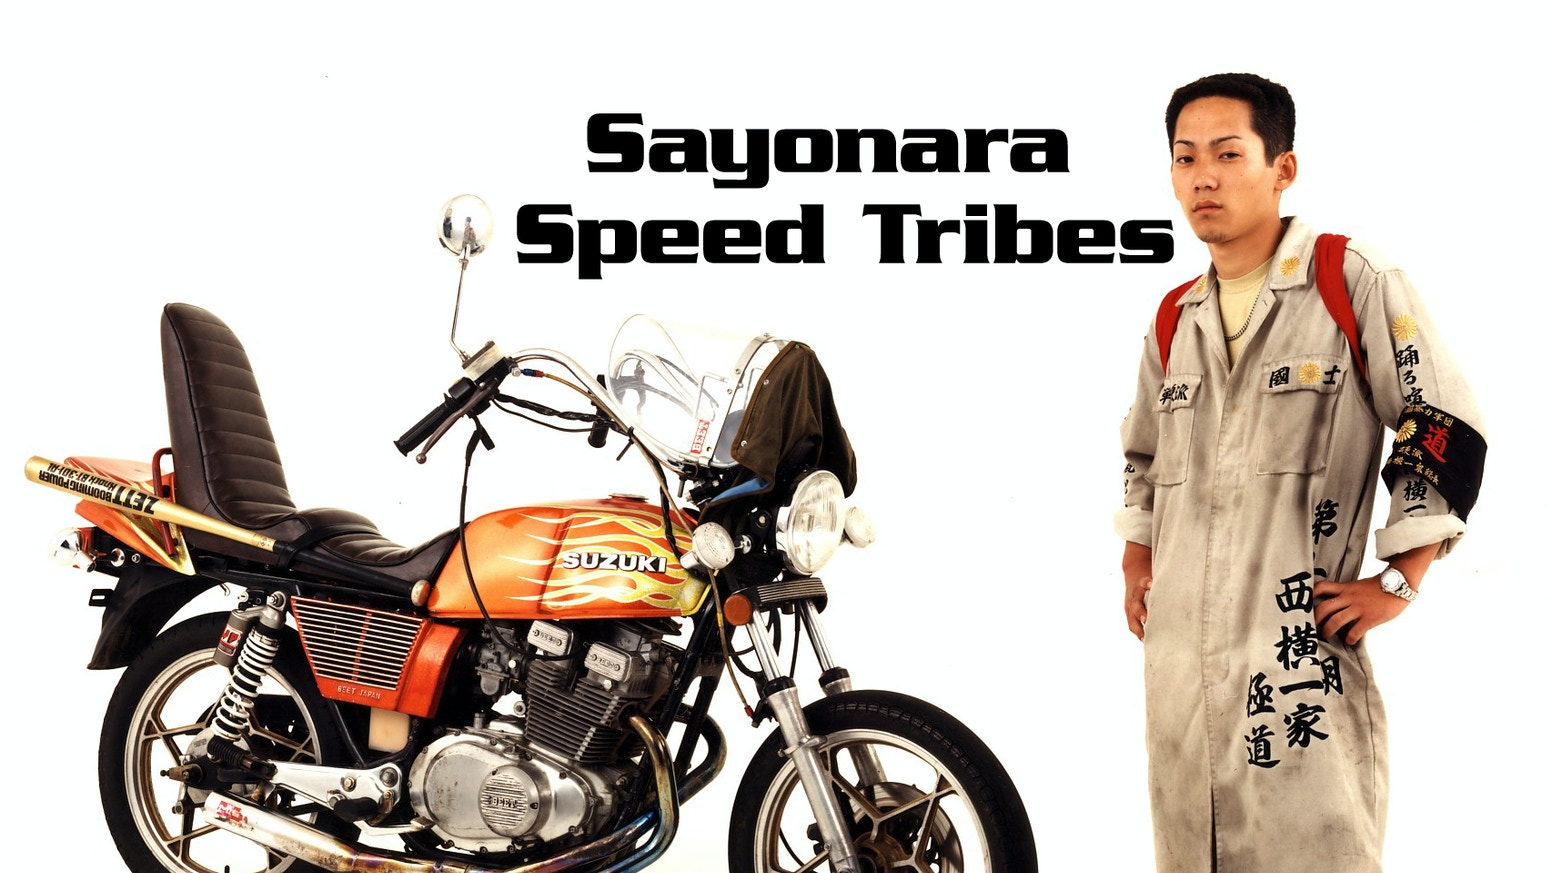 Japanese bikers fight to resuscitate SPEED TRIBES - gangs infamous for motorcycle antics and modifications.